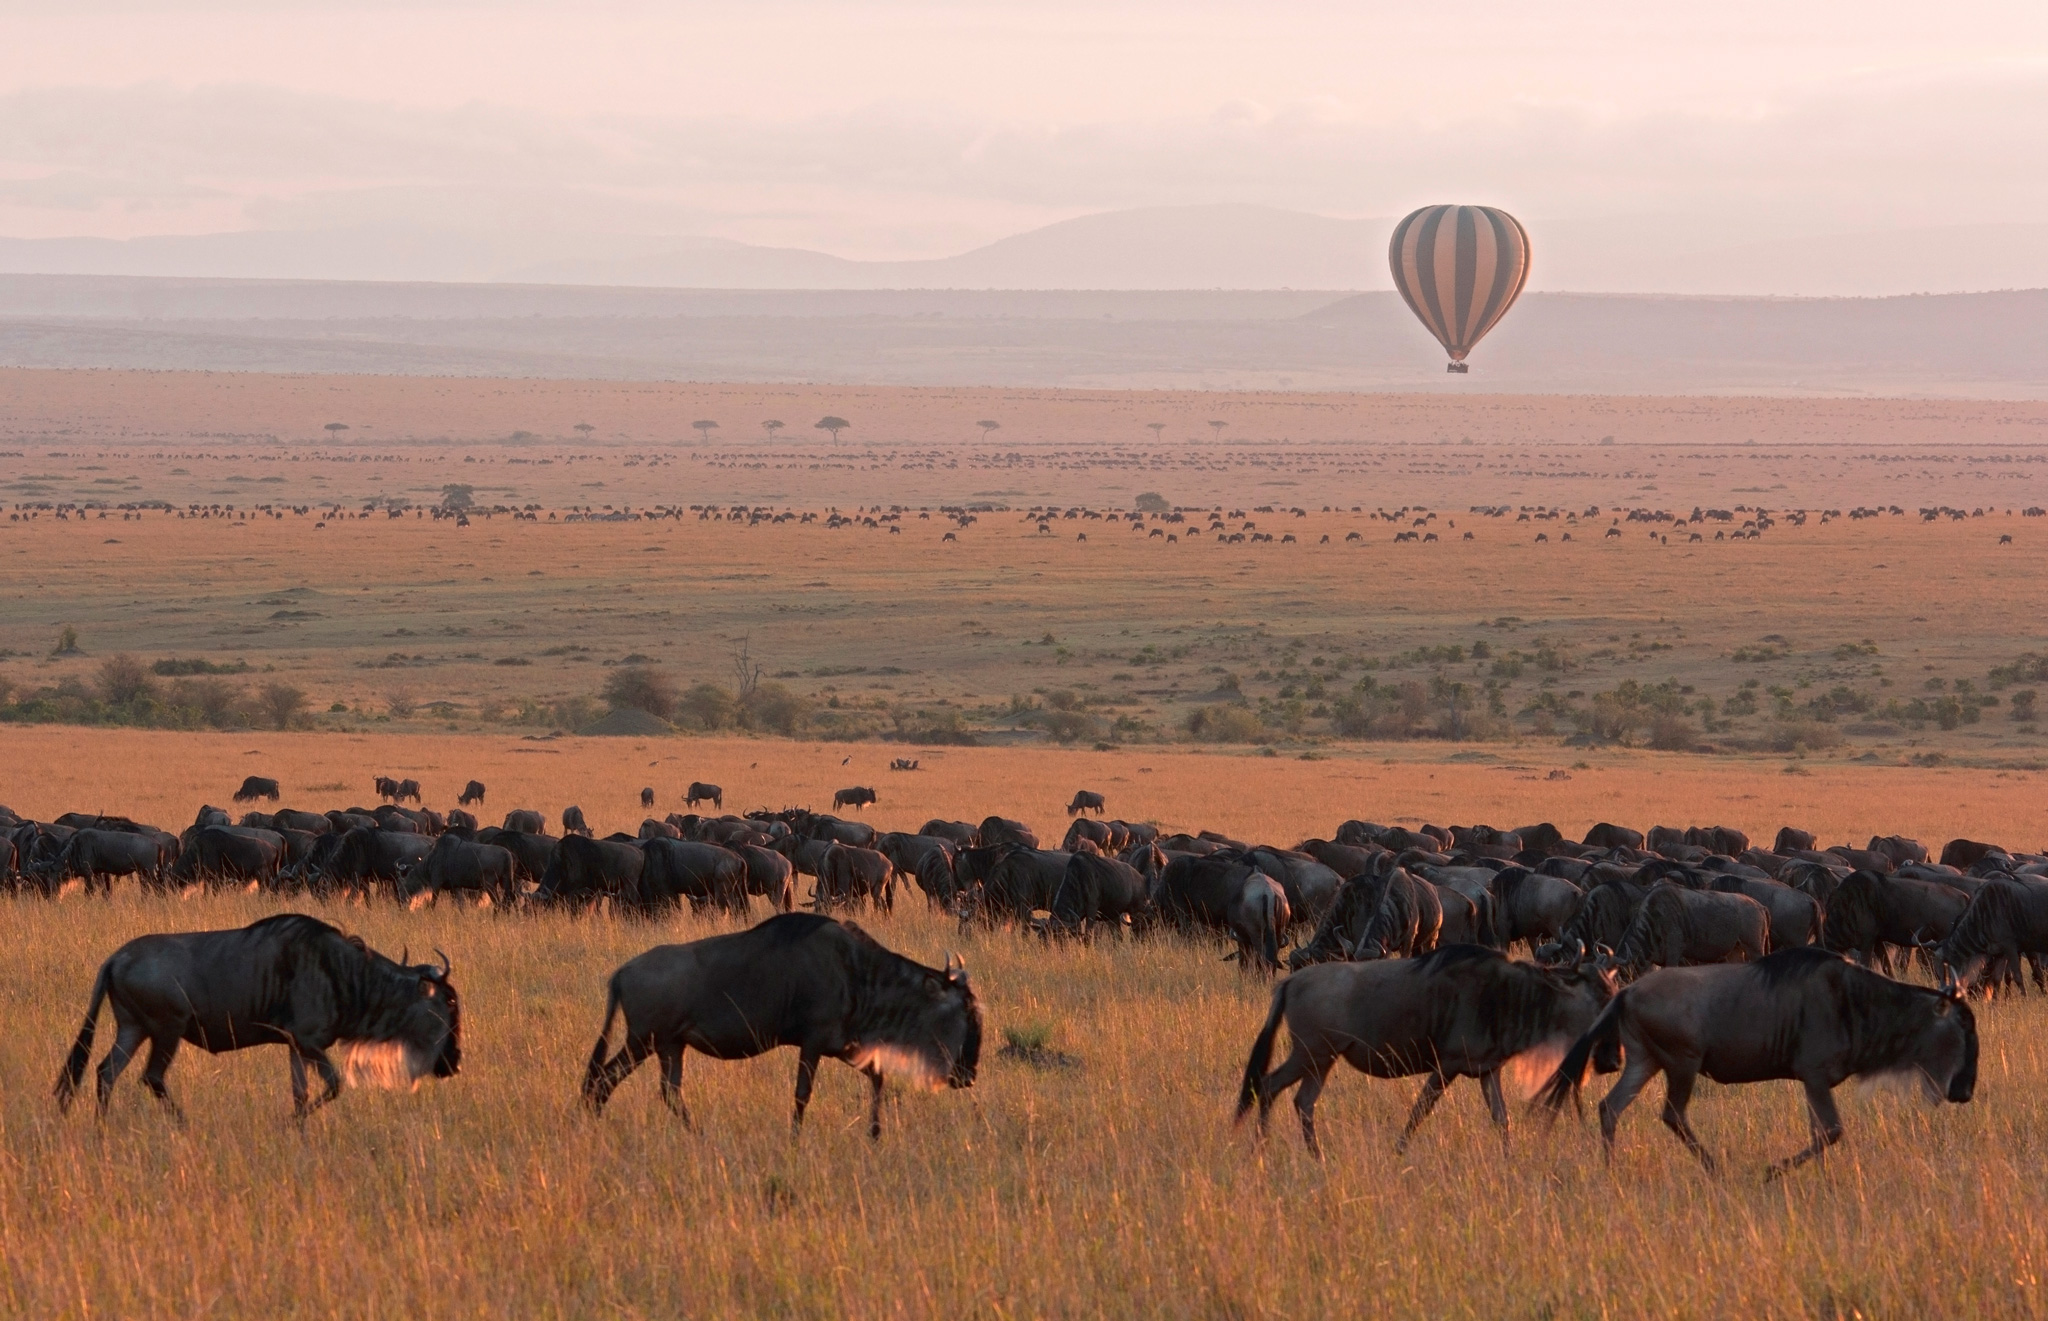 Hot Air Ballooning Serengeti National Park in Tanzania